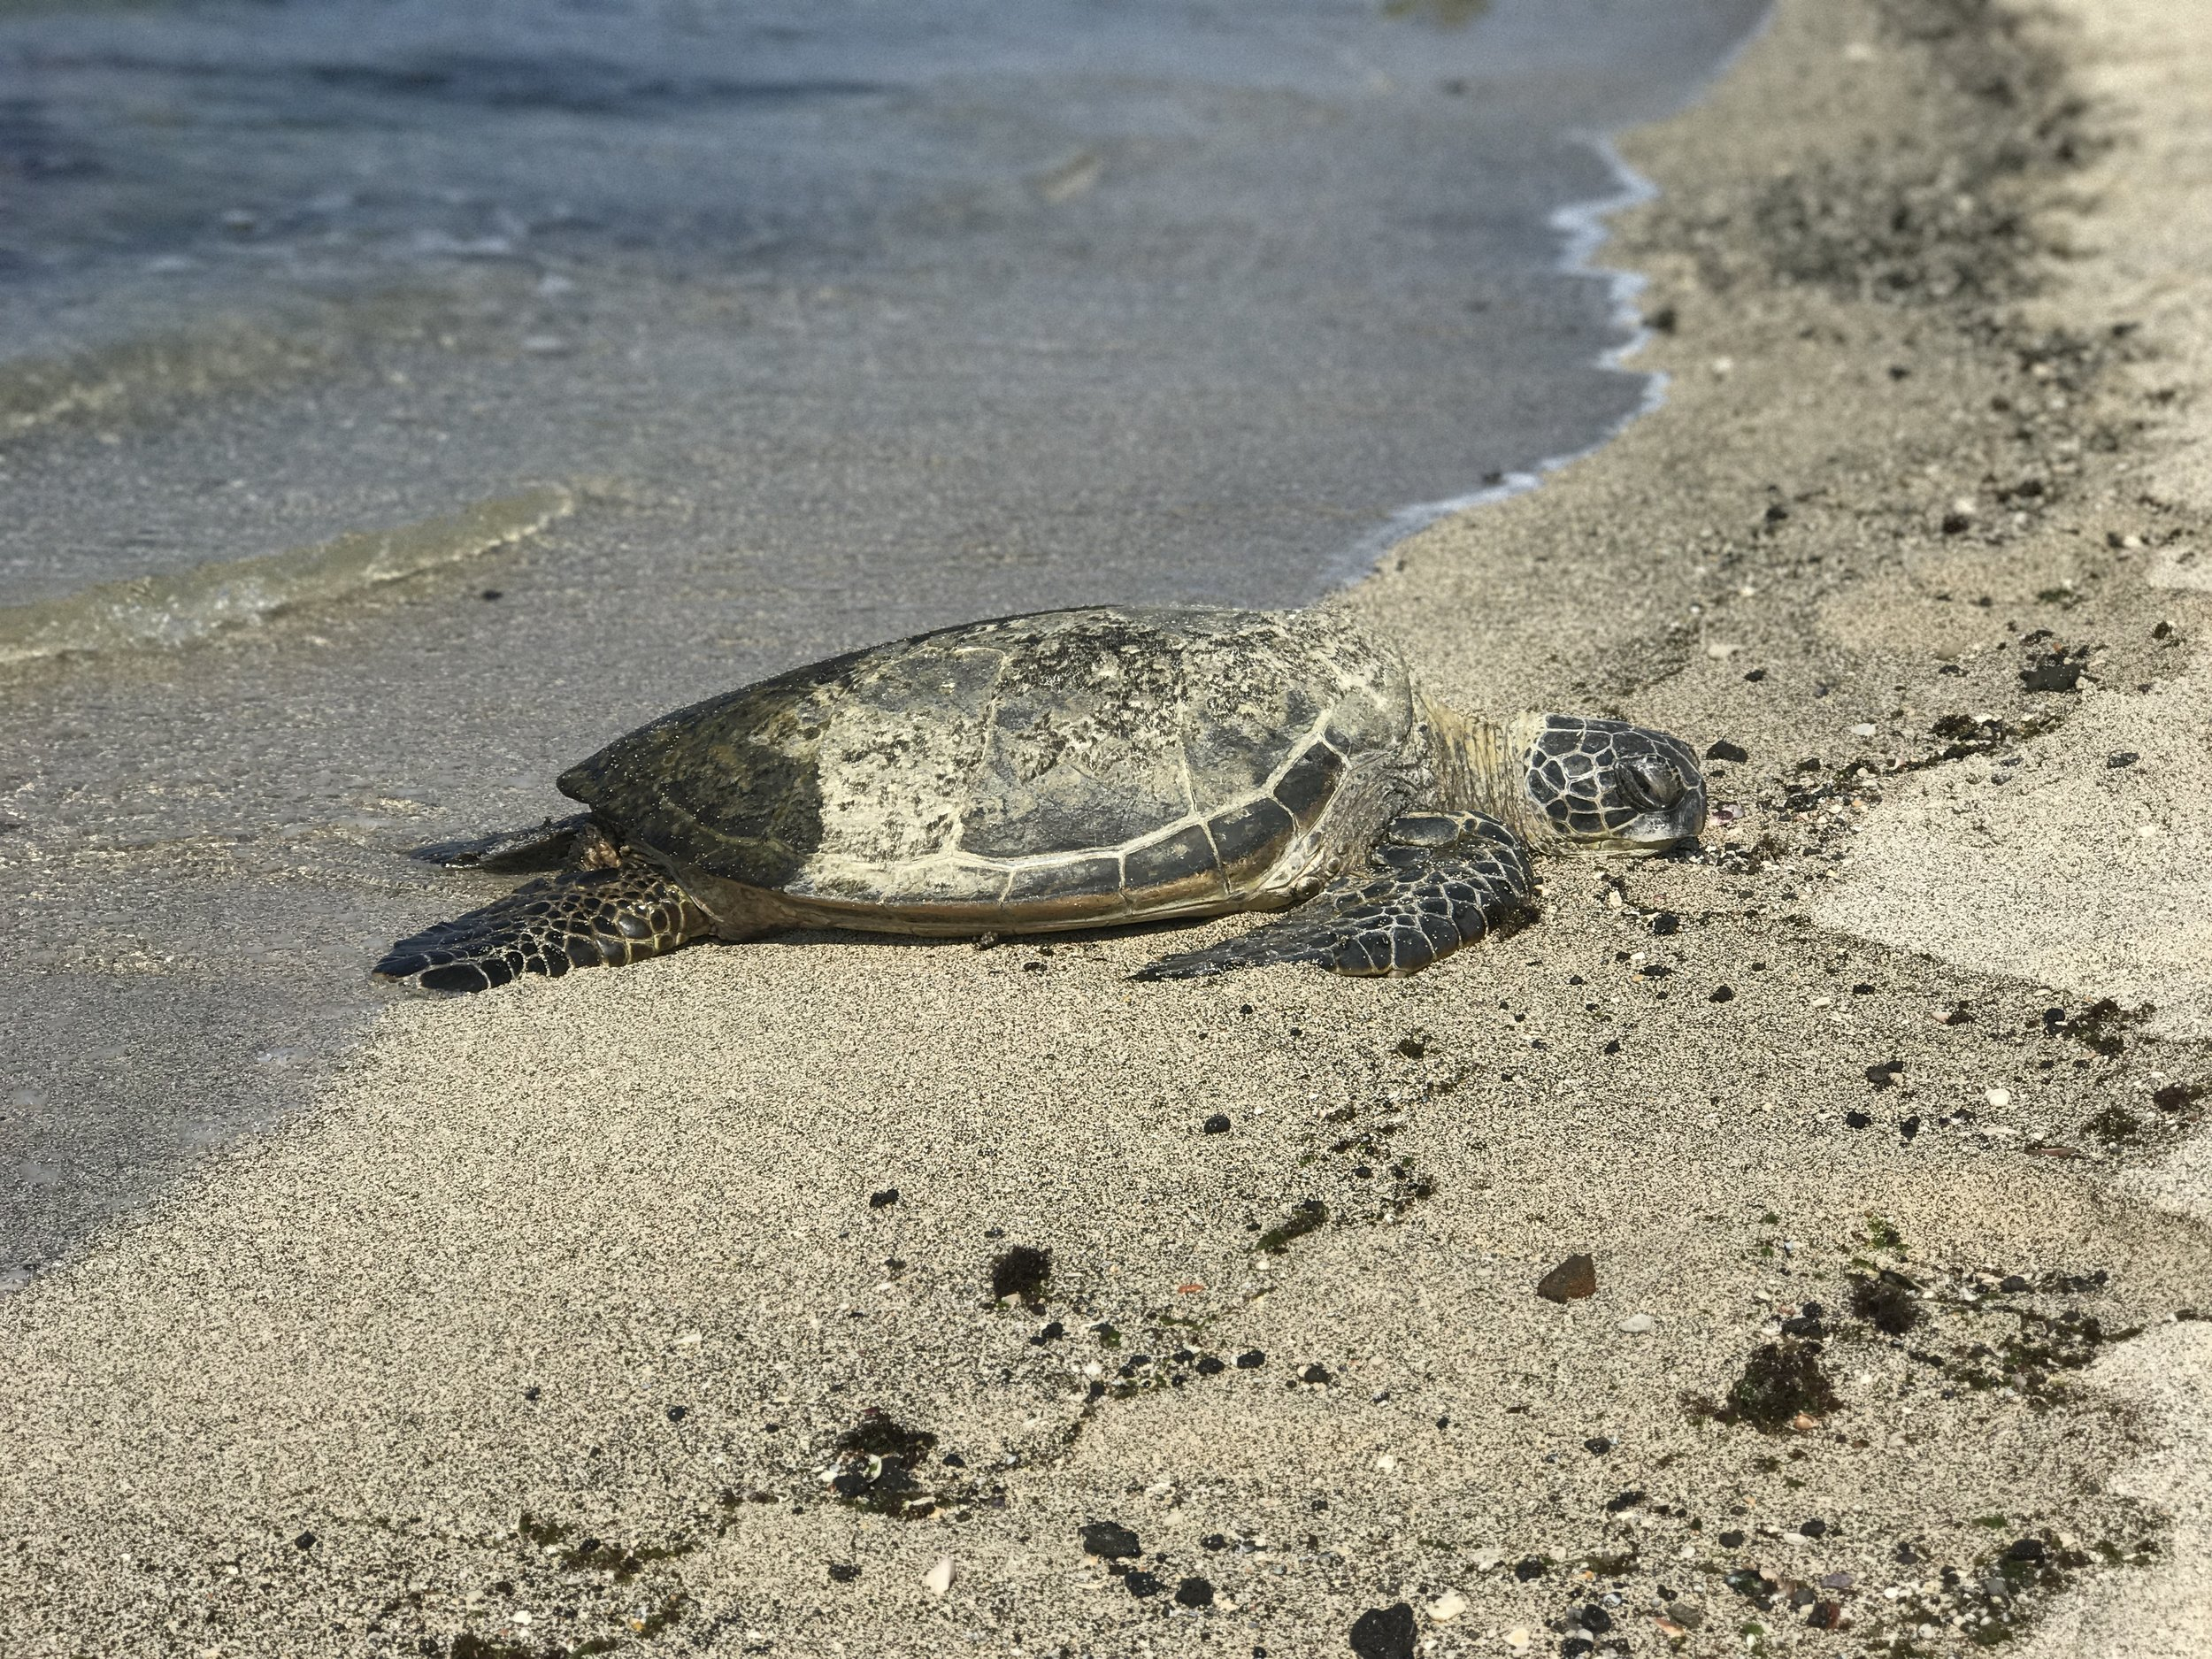 A sea turtle at the harbor in Hawaii